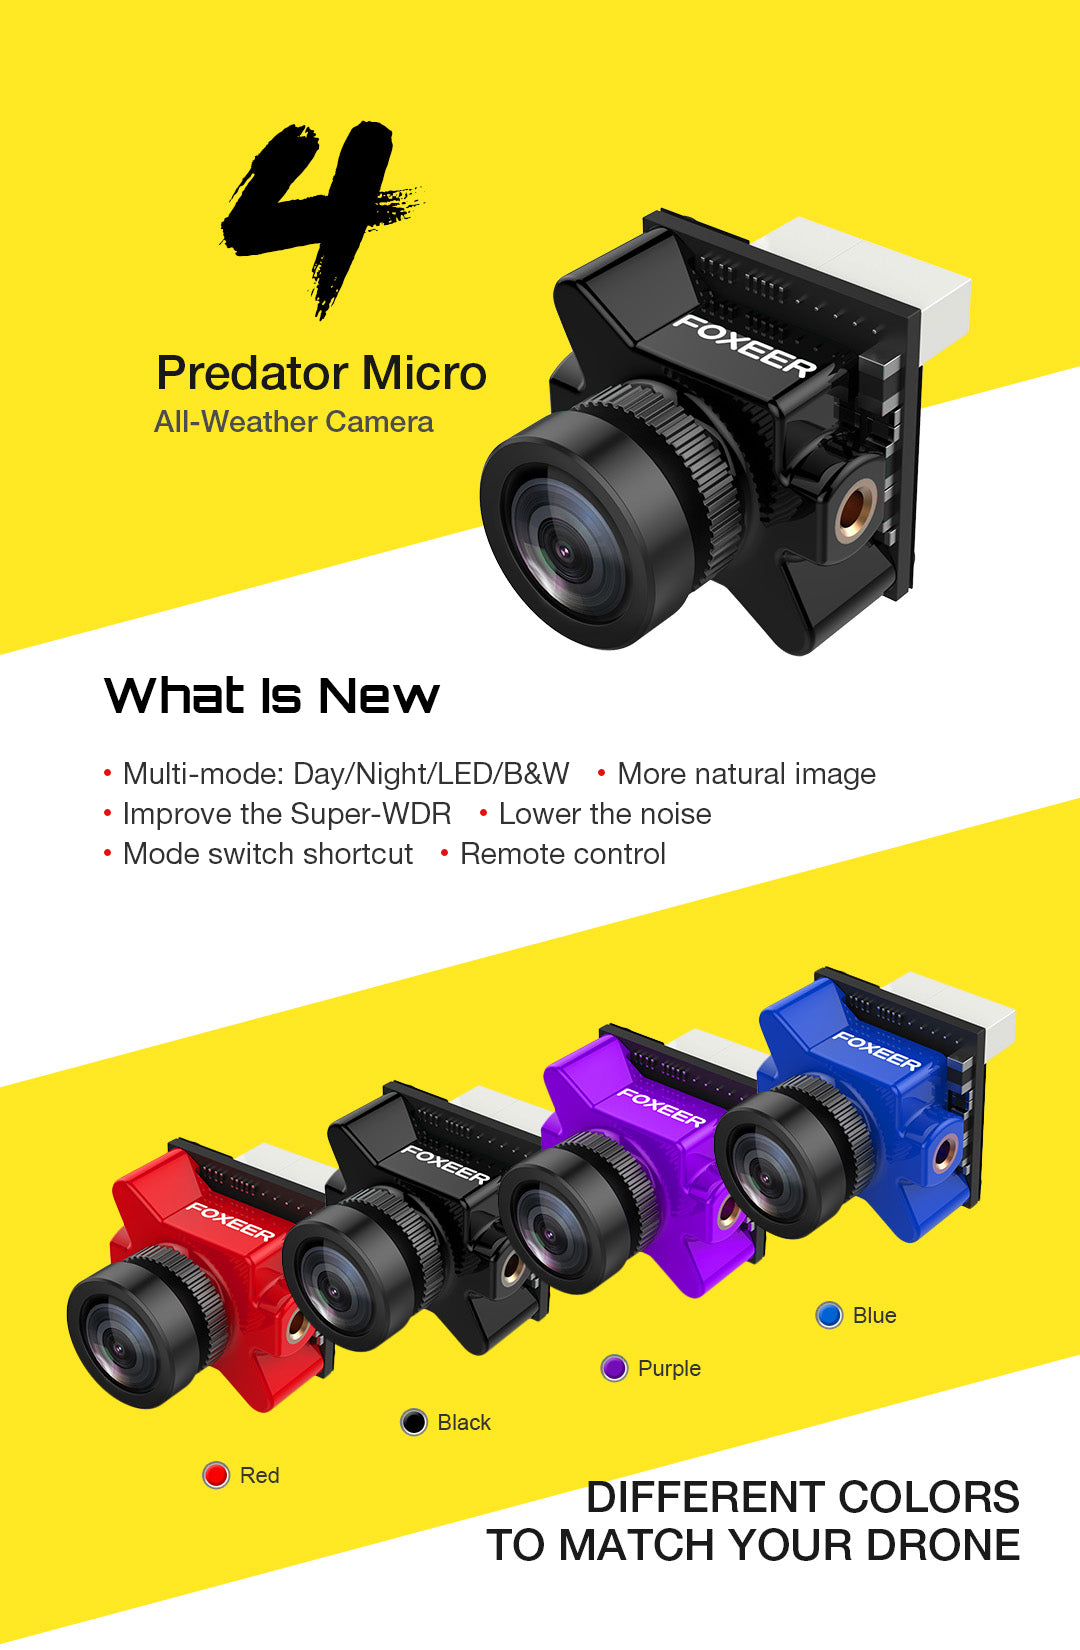 Foxeer Micro Predator 4 Super WDR 4ms latency FPV Racing Camera SKU: HS1225